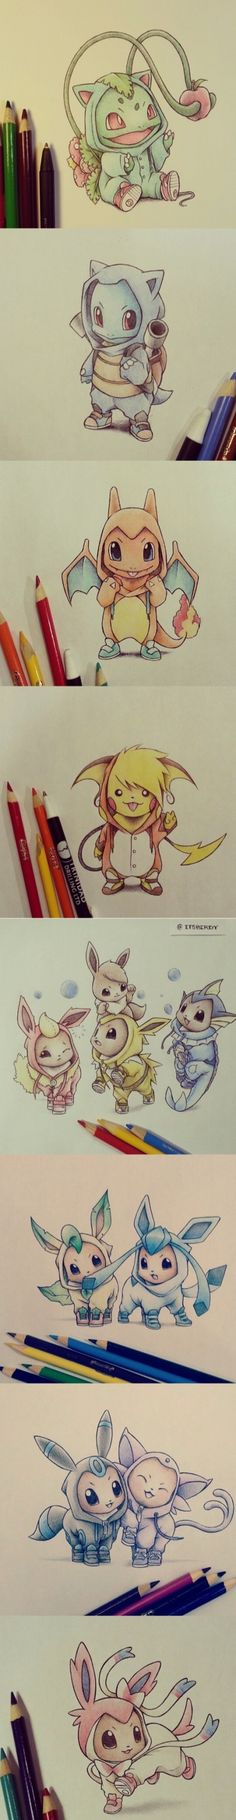 Pokemon in onesies of their evolutions! See source for artist!